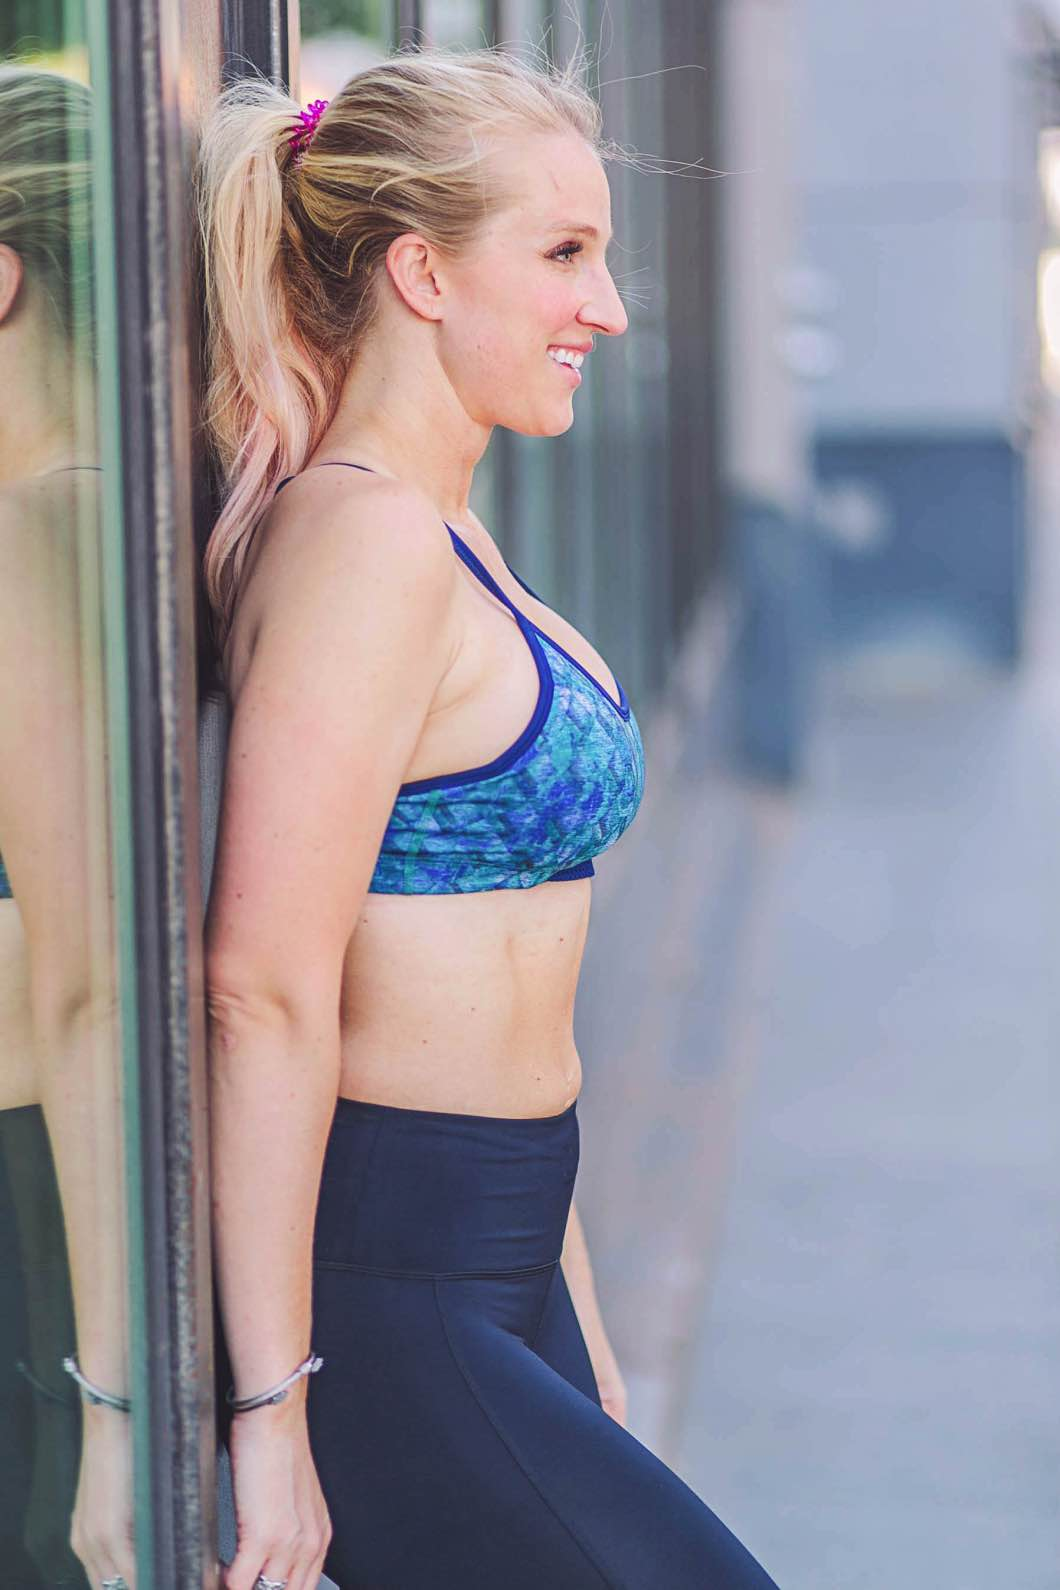 Ab Separation & Postpartum Workout - The Ultimate Diastasis Recti Test by Atlanta fitness blogger Jessica of Happily Hughes